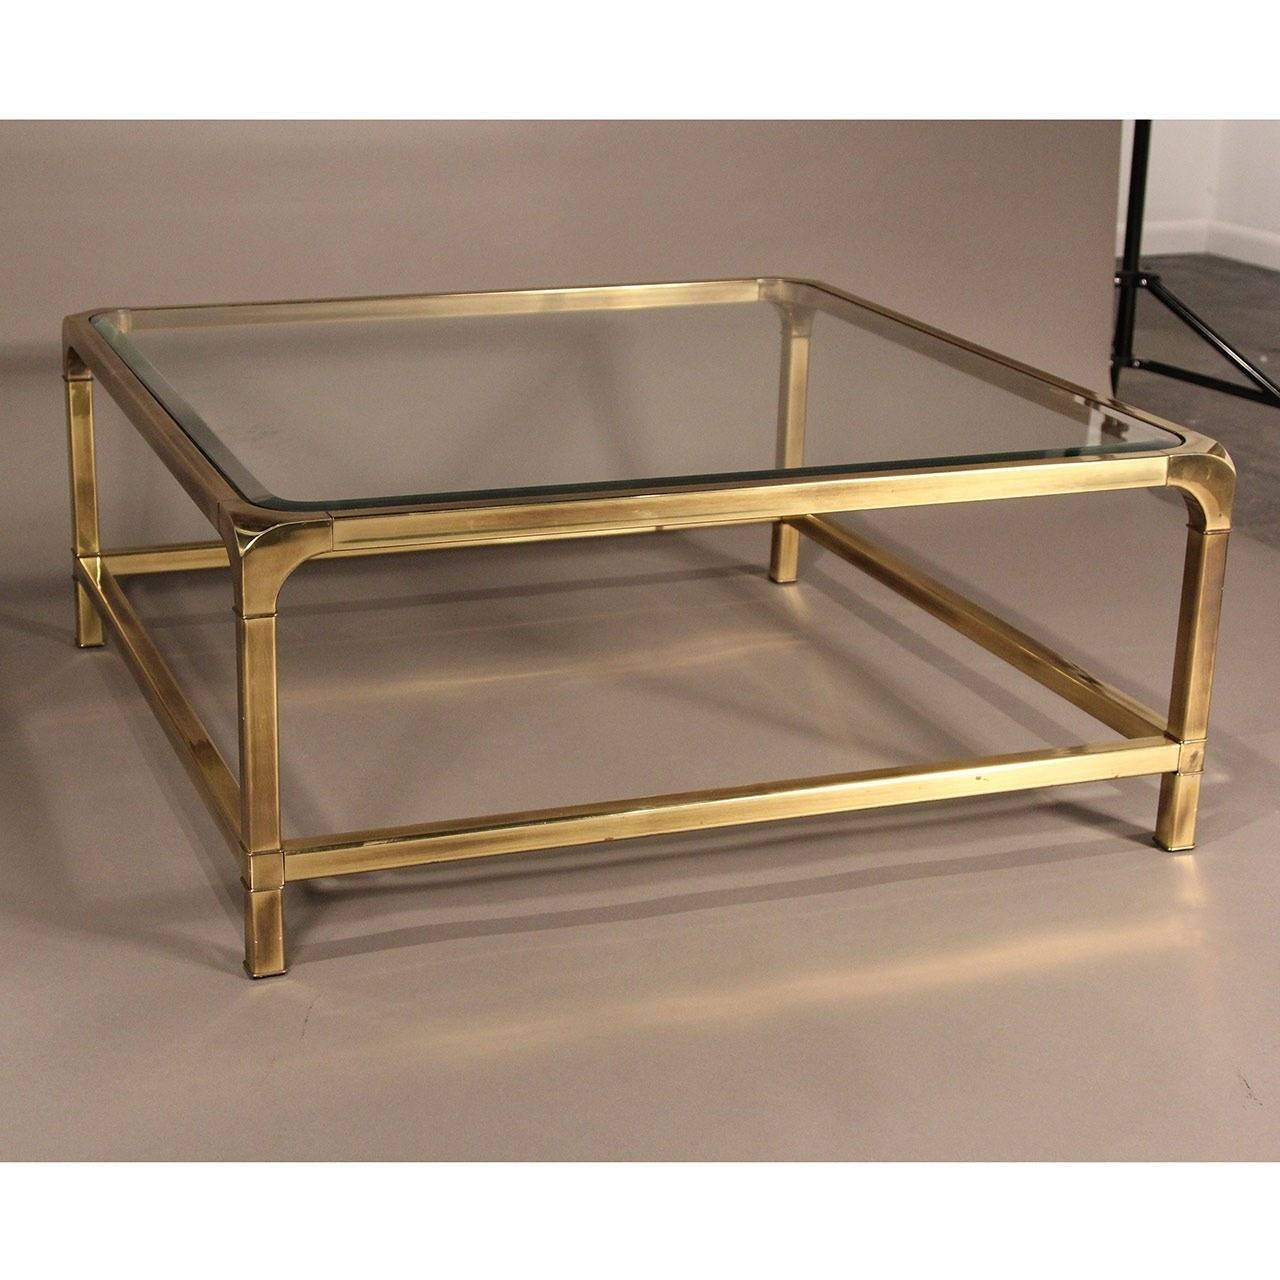 Mastercraft Brass And Glass Coffee Table At 1Stdibs regarding Antique Brass Glass Coffee Tables (Image 29 of 37)